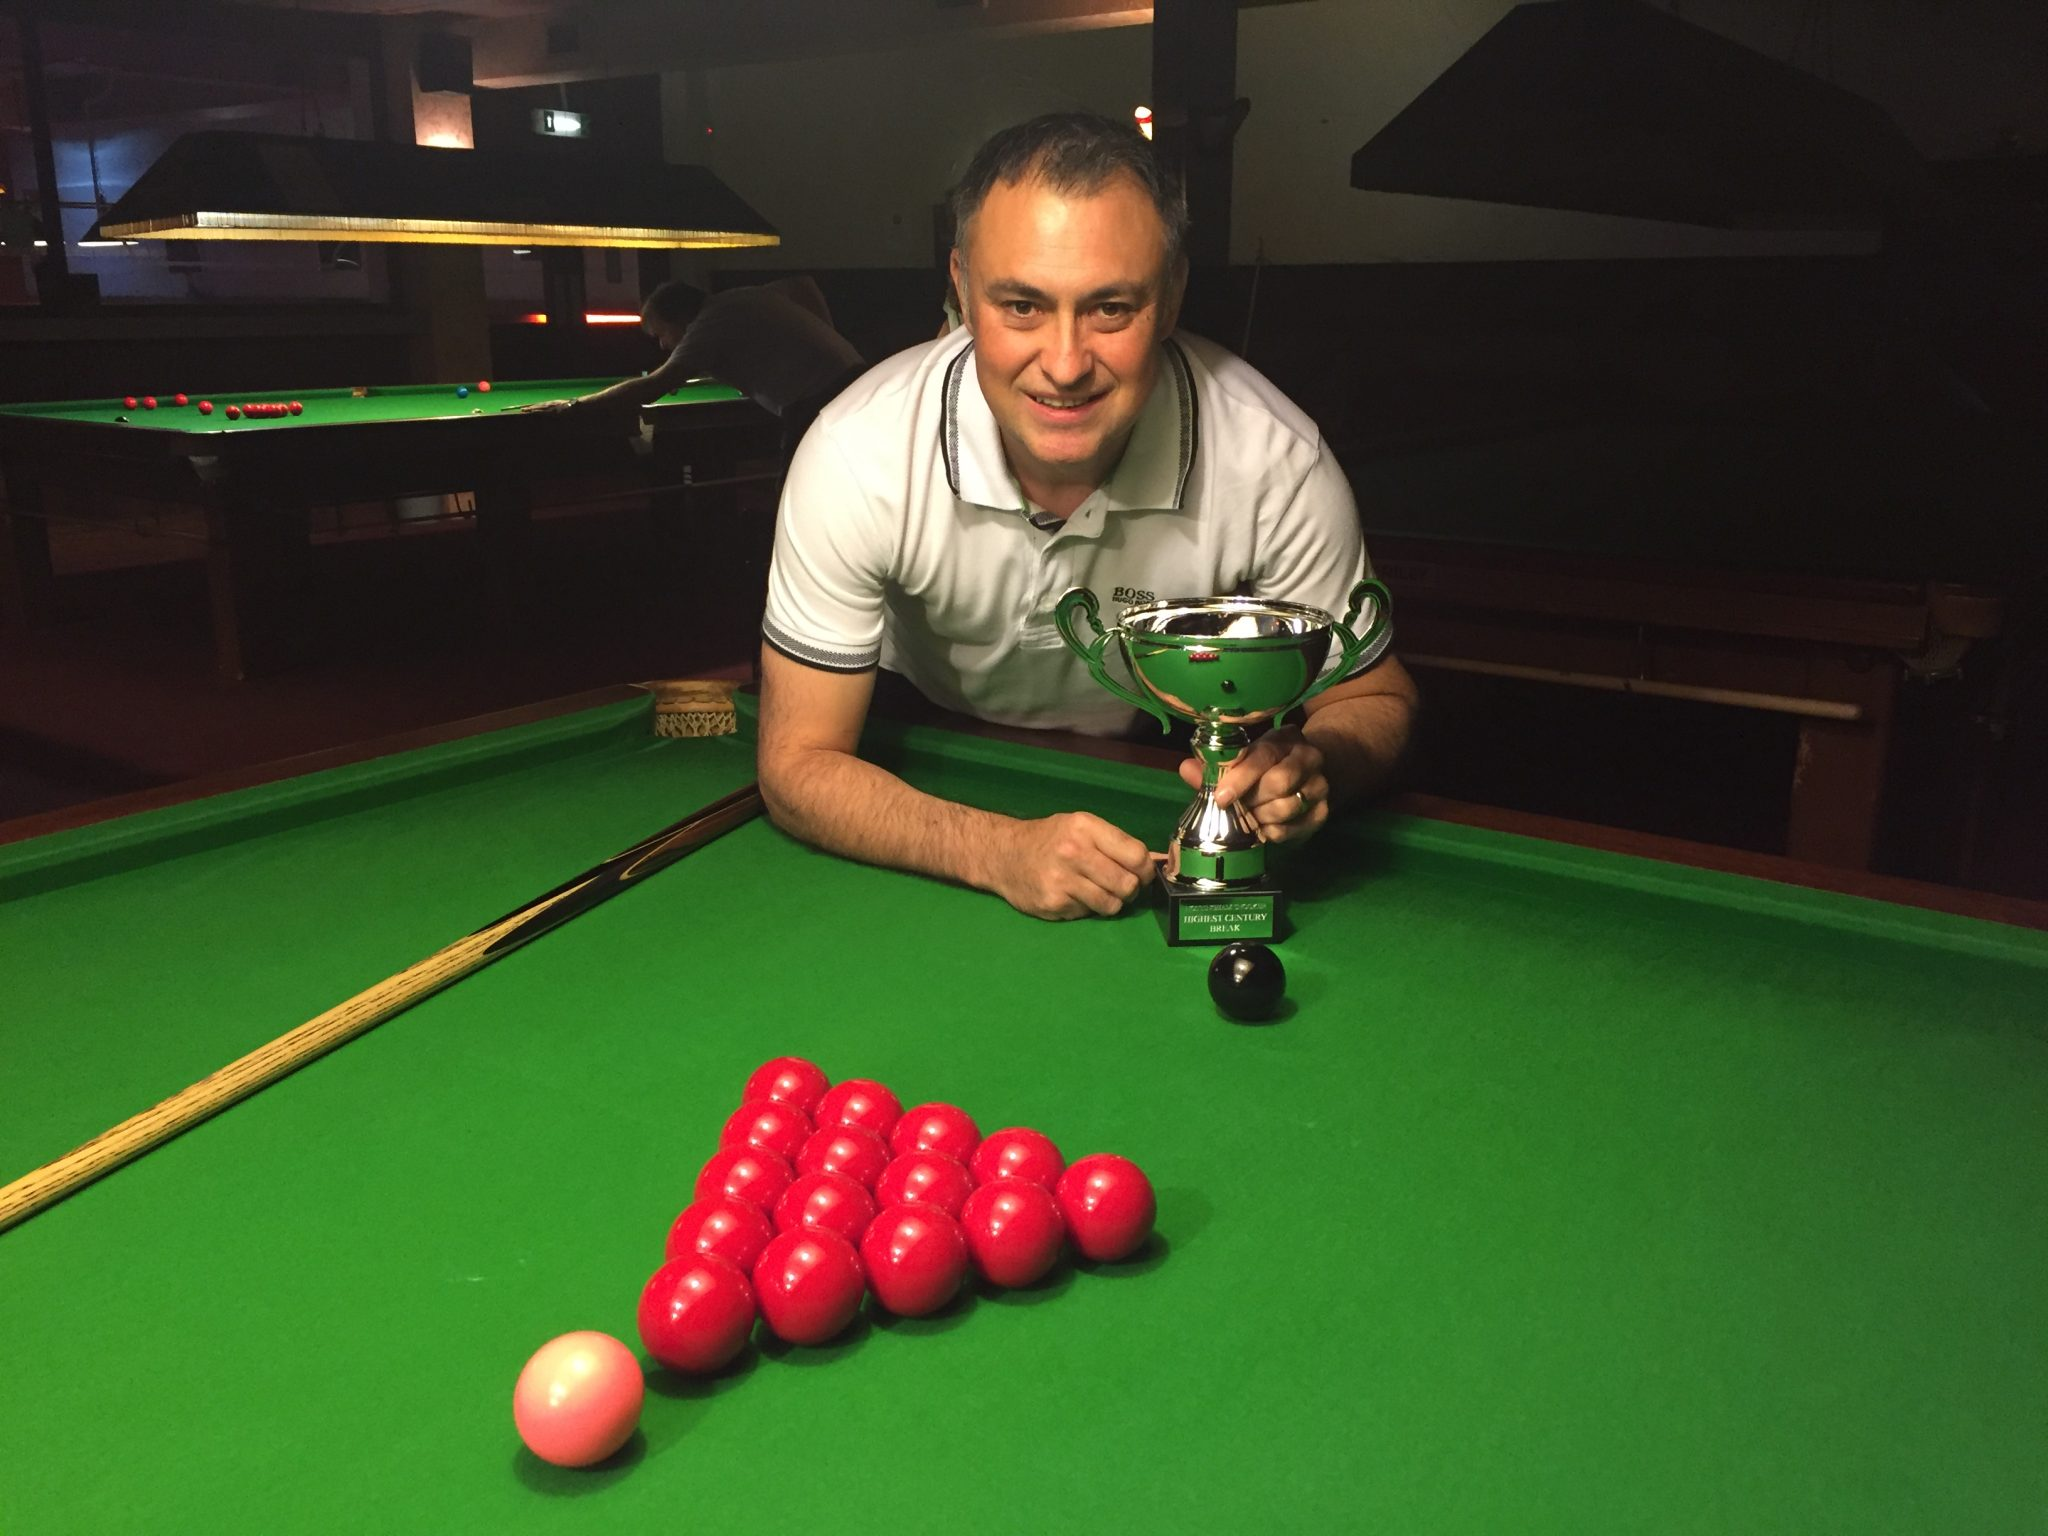 Wayne Martin presented with Highest Century Break Trophy in recognition of his magnificent 130 break